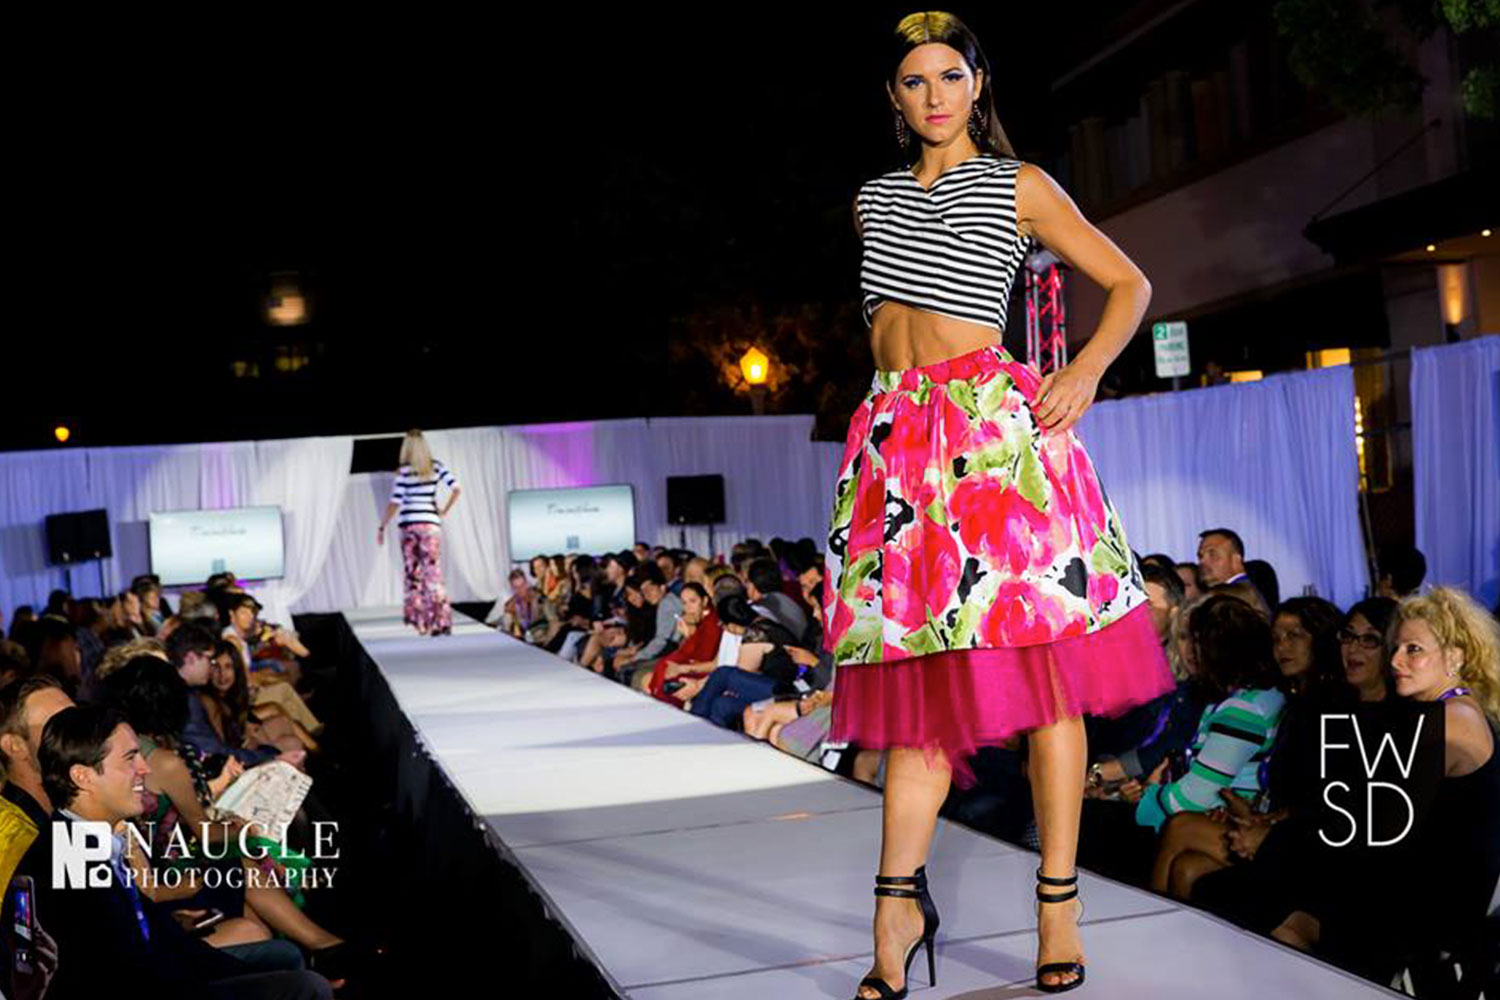 FWSD 2015 Runway Shows: Timmithea